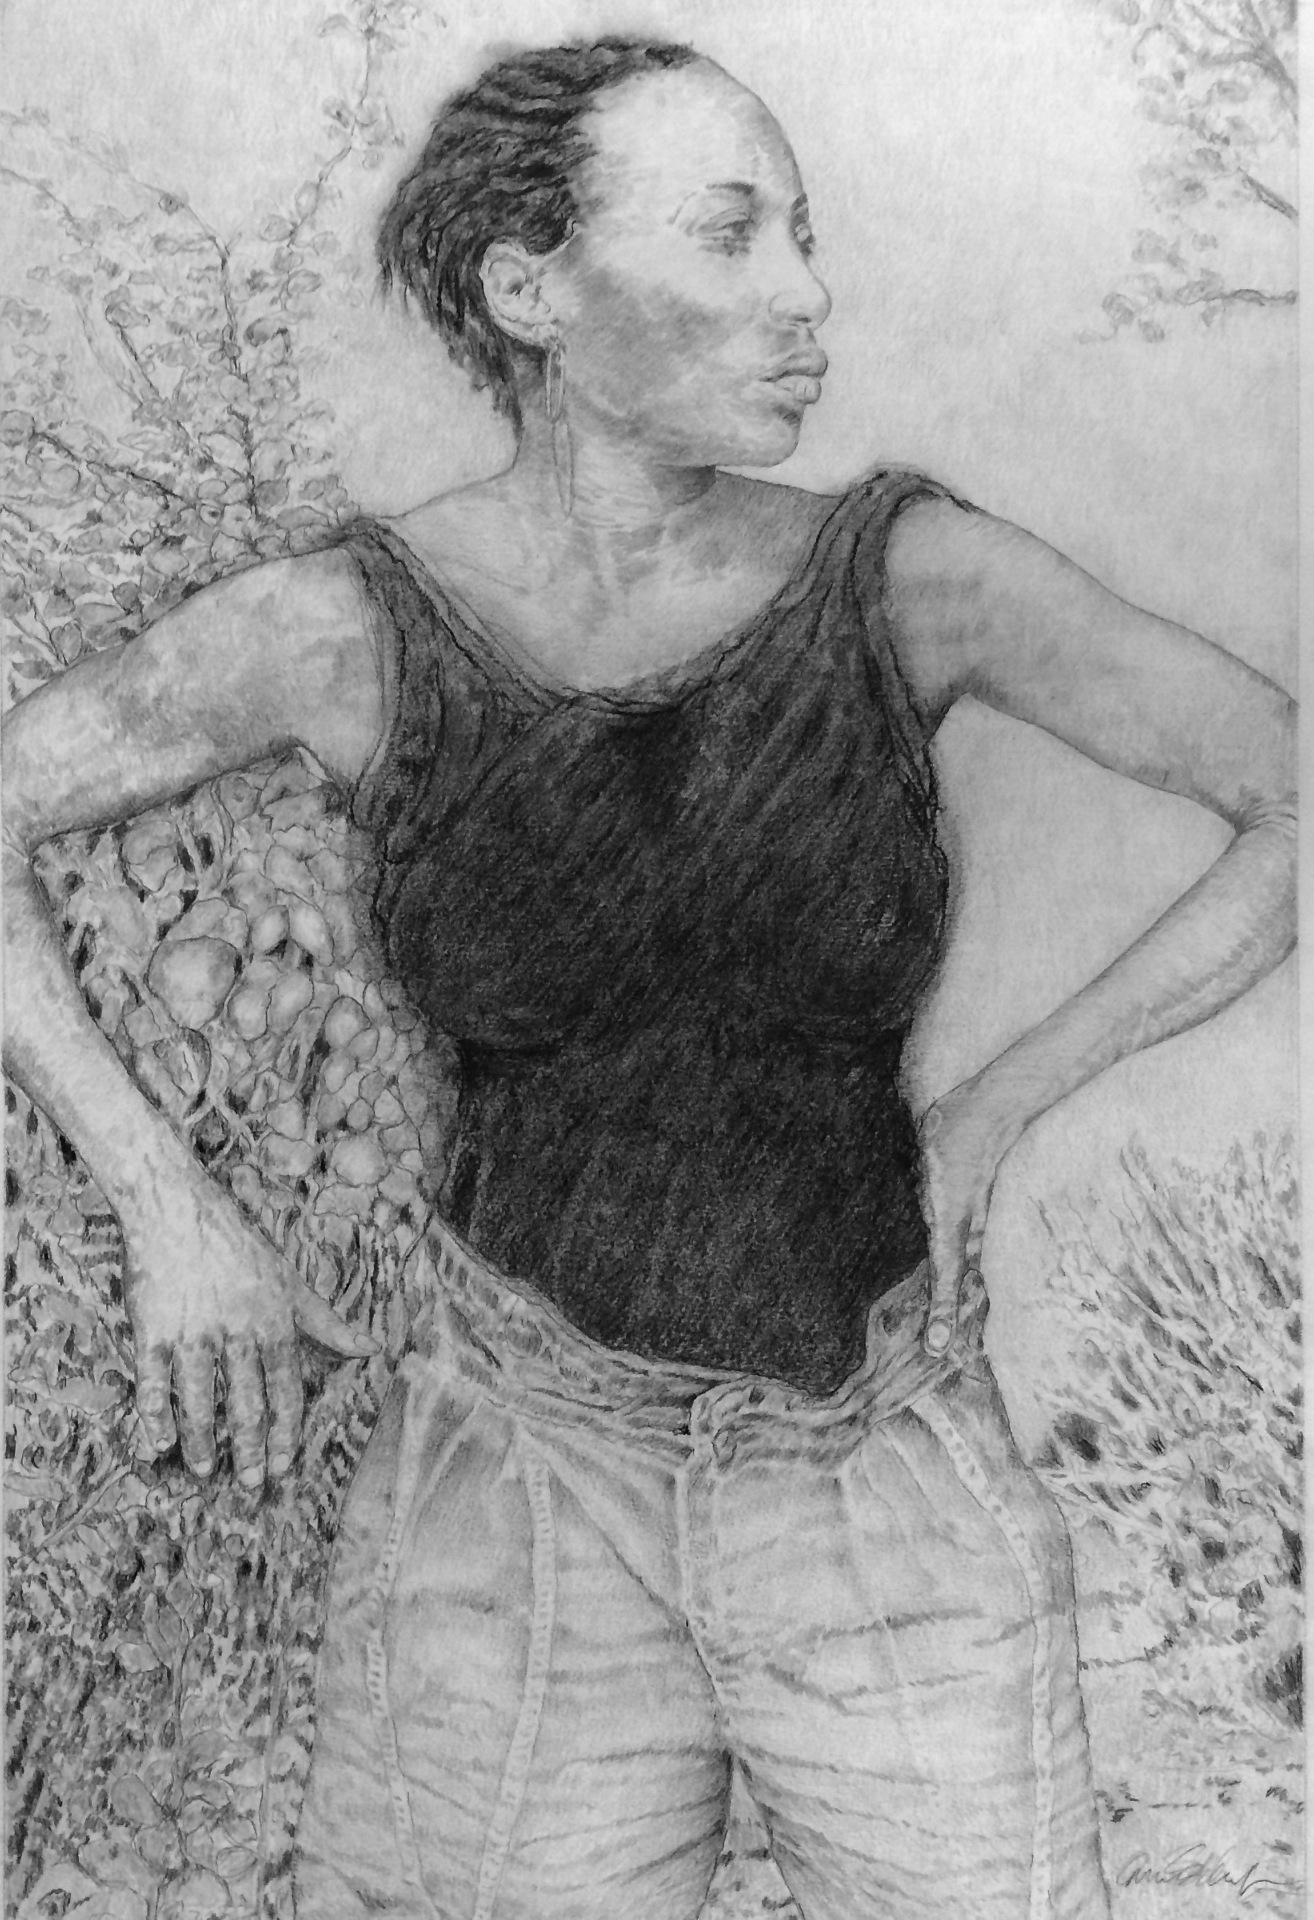 CARMEN SCHAEFER  - Rochester, NY   The Dancer   graphite and charcoal, $1,000